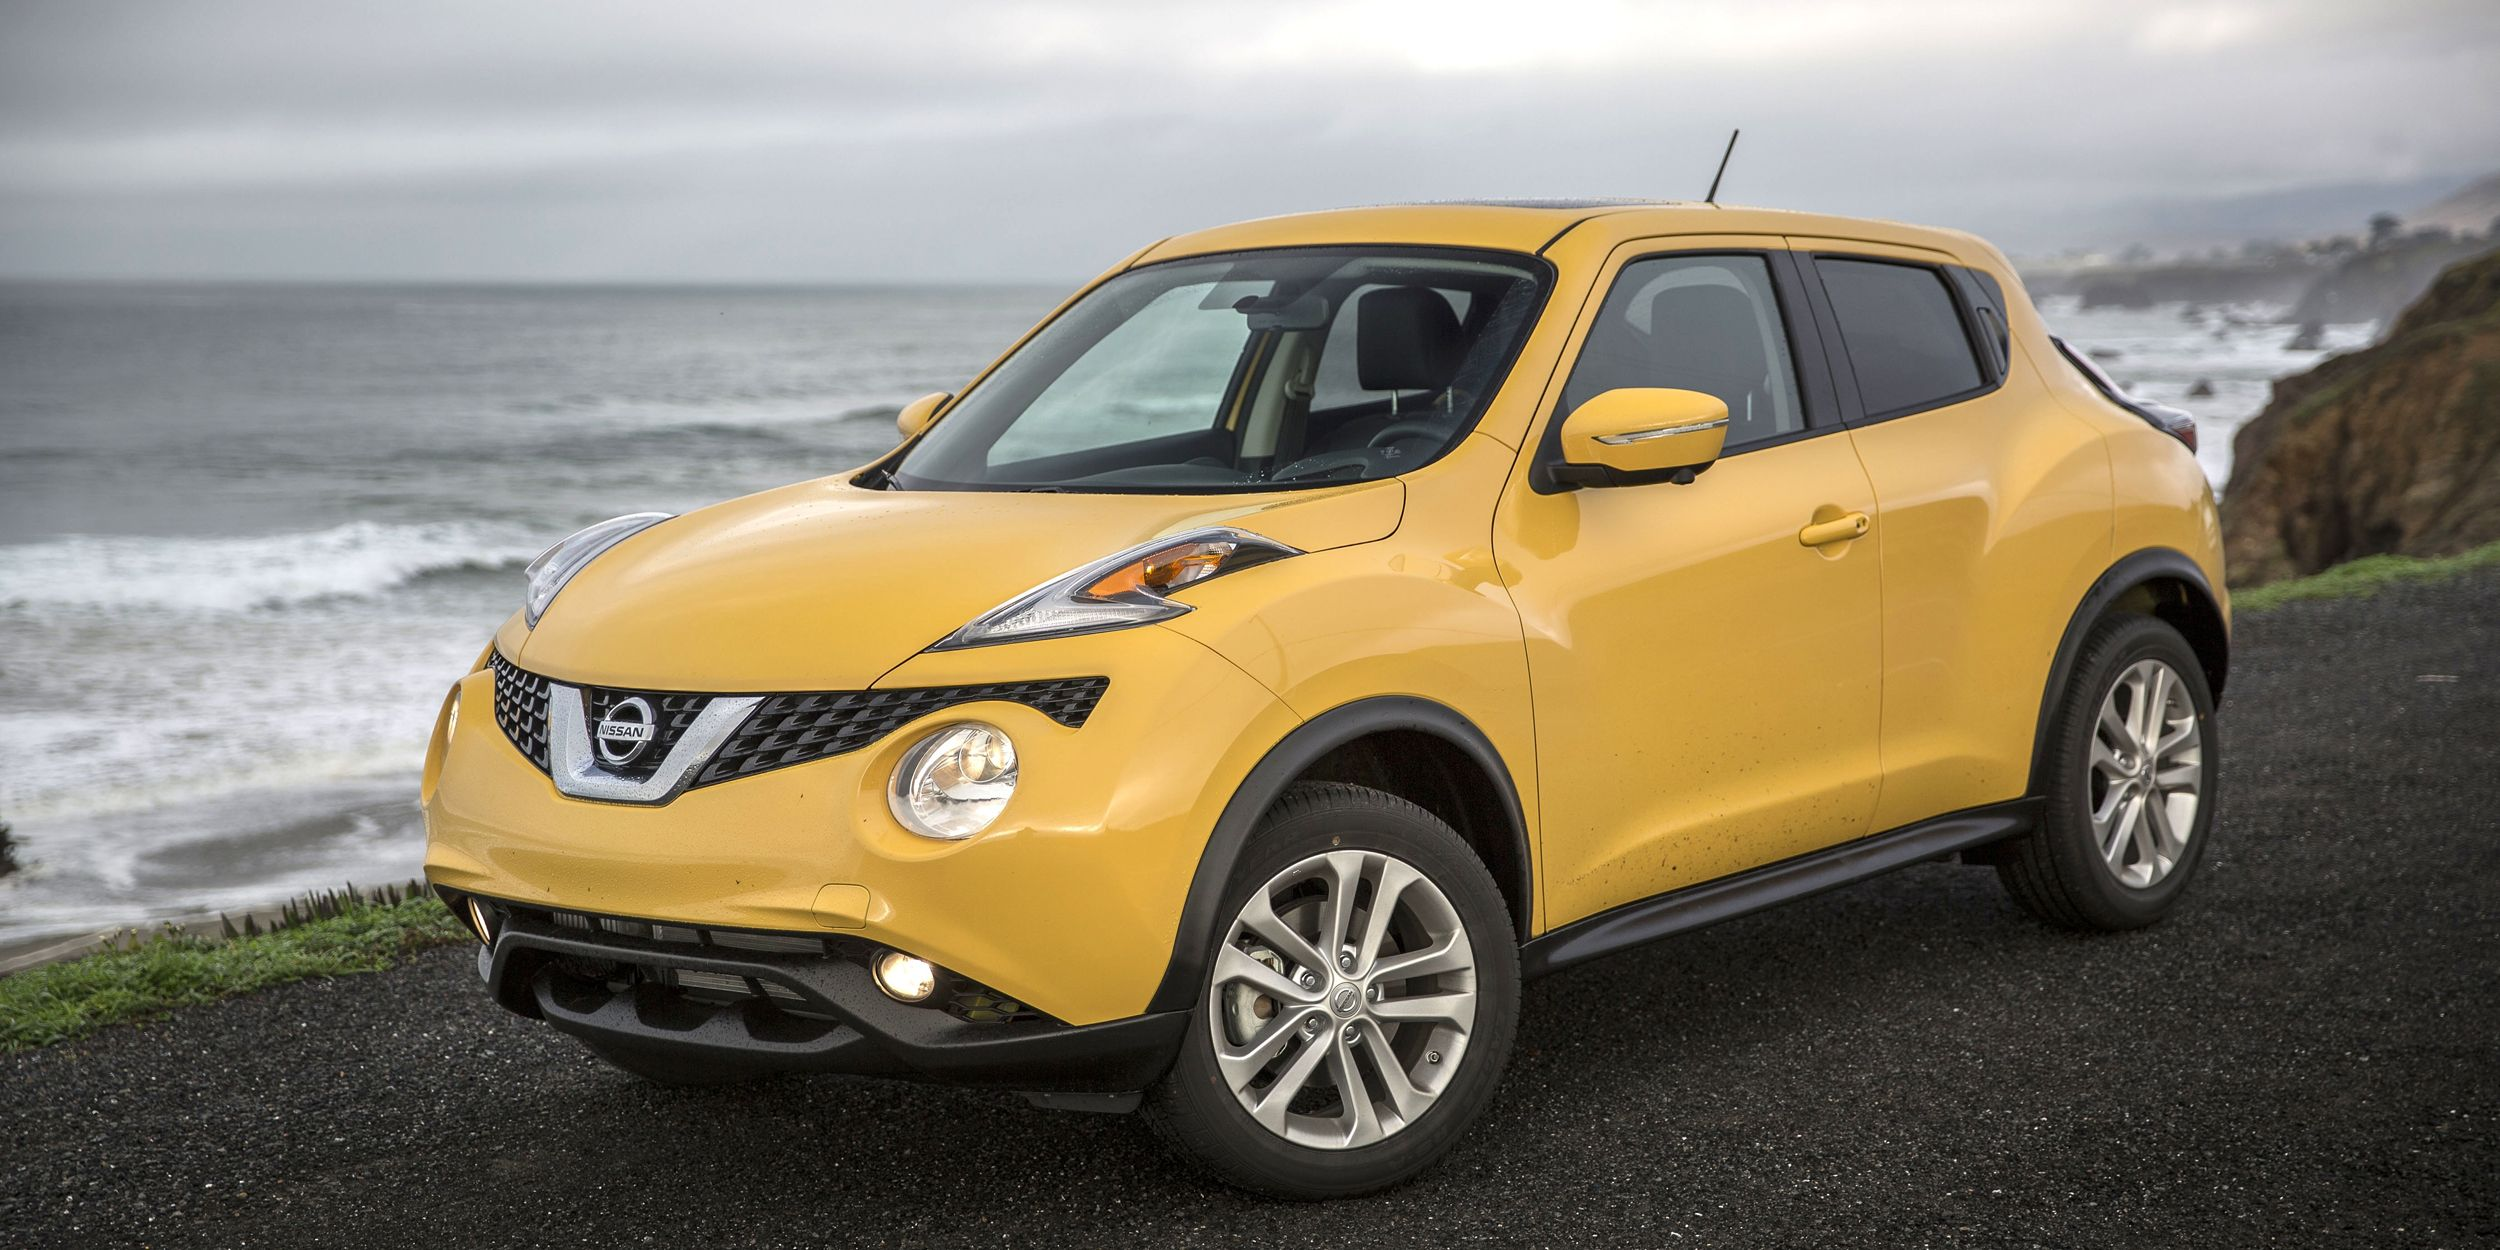 "<p>The Nissan Juke looks like a crossover with a crocodile-eyed sports car glued to its top, but somehow, we love its goofy styling. It has <a href=""http://www.roadandtrack.com/new-cars/first-drives/reviews/a15930/sneak-preview-driving-the-2011-nissan-juke/"">surprisingly little body roll</a> and grips well in the twisties. Nissan designed the Juke to compete with the Mini Cooper. However, nearly every Mini variant outsold the Juke last year.</p>"